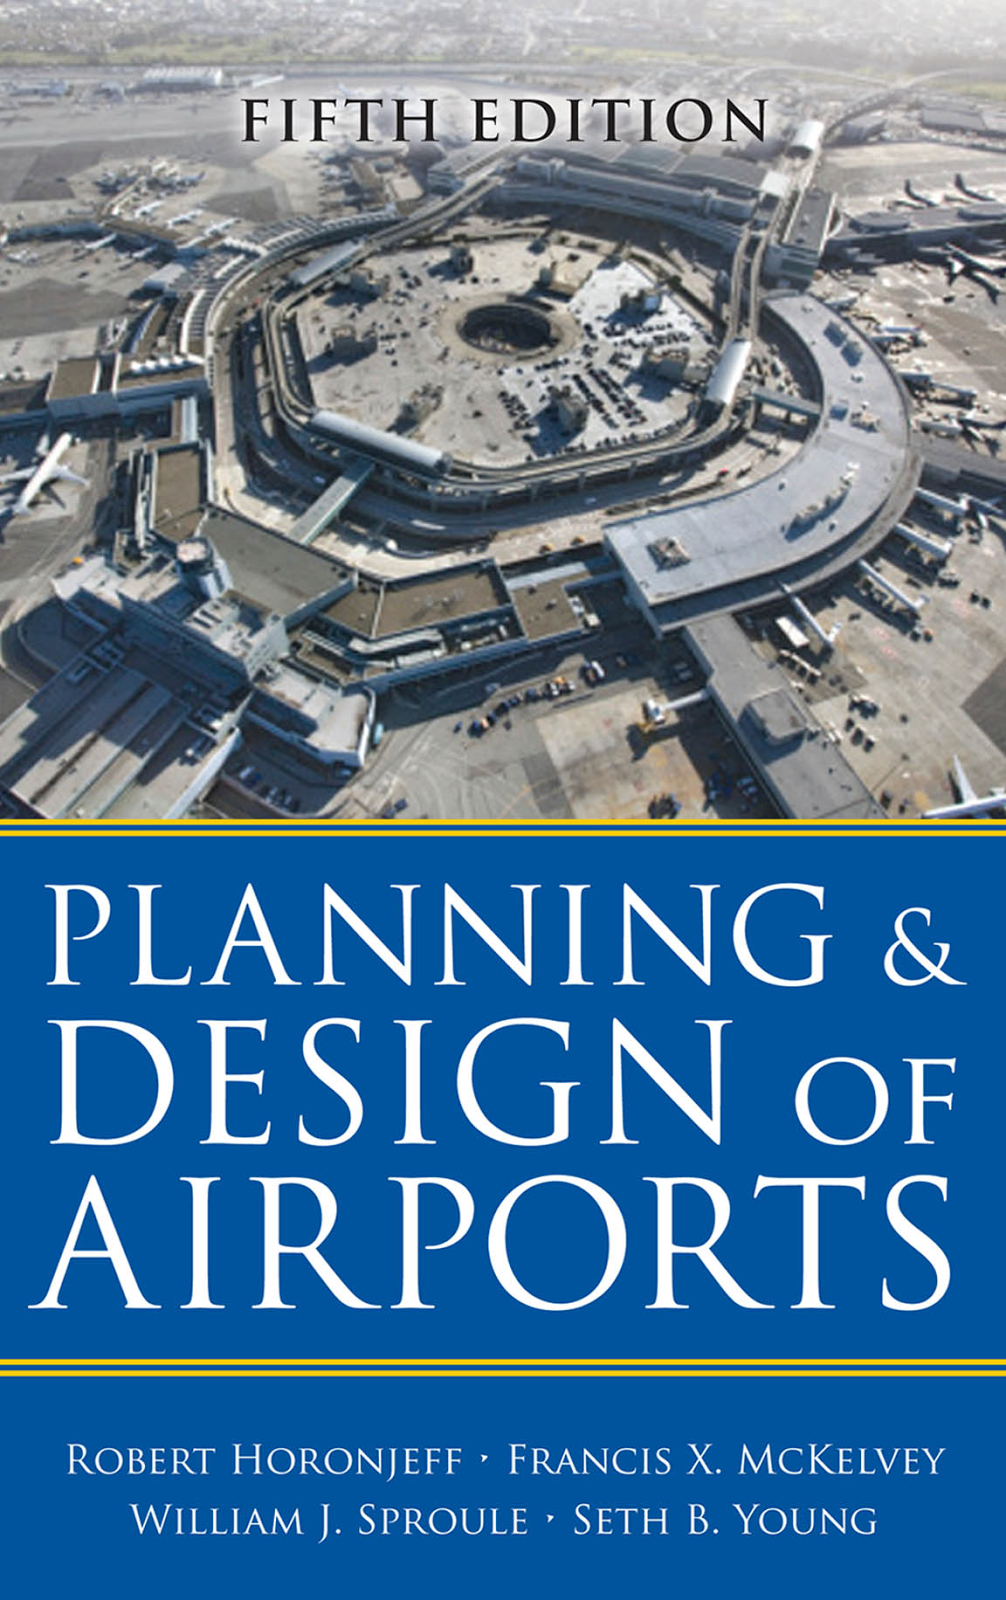 Planning and Design of Airports (5th Edition) by Robert Horonjeff,Francis X. McKelvey,William J. Sproule,Seth B. Young